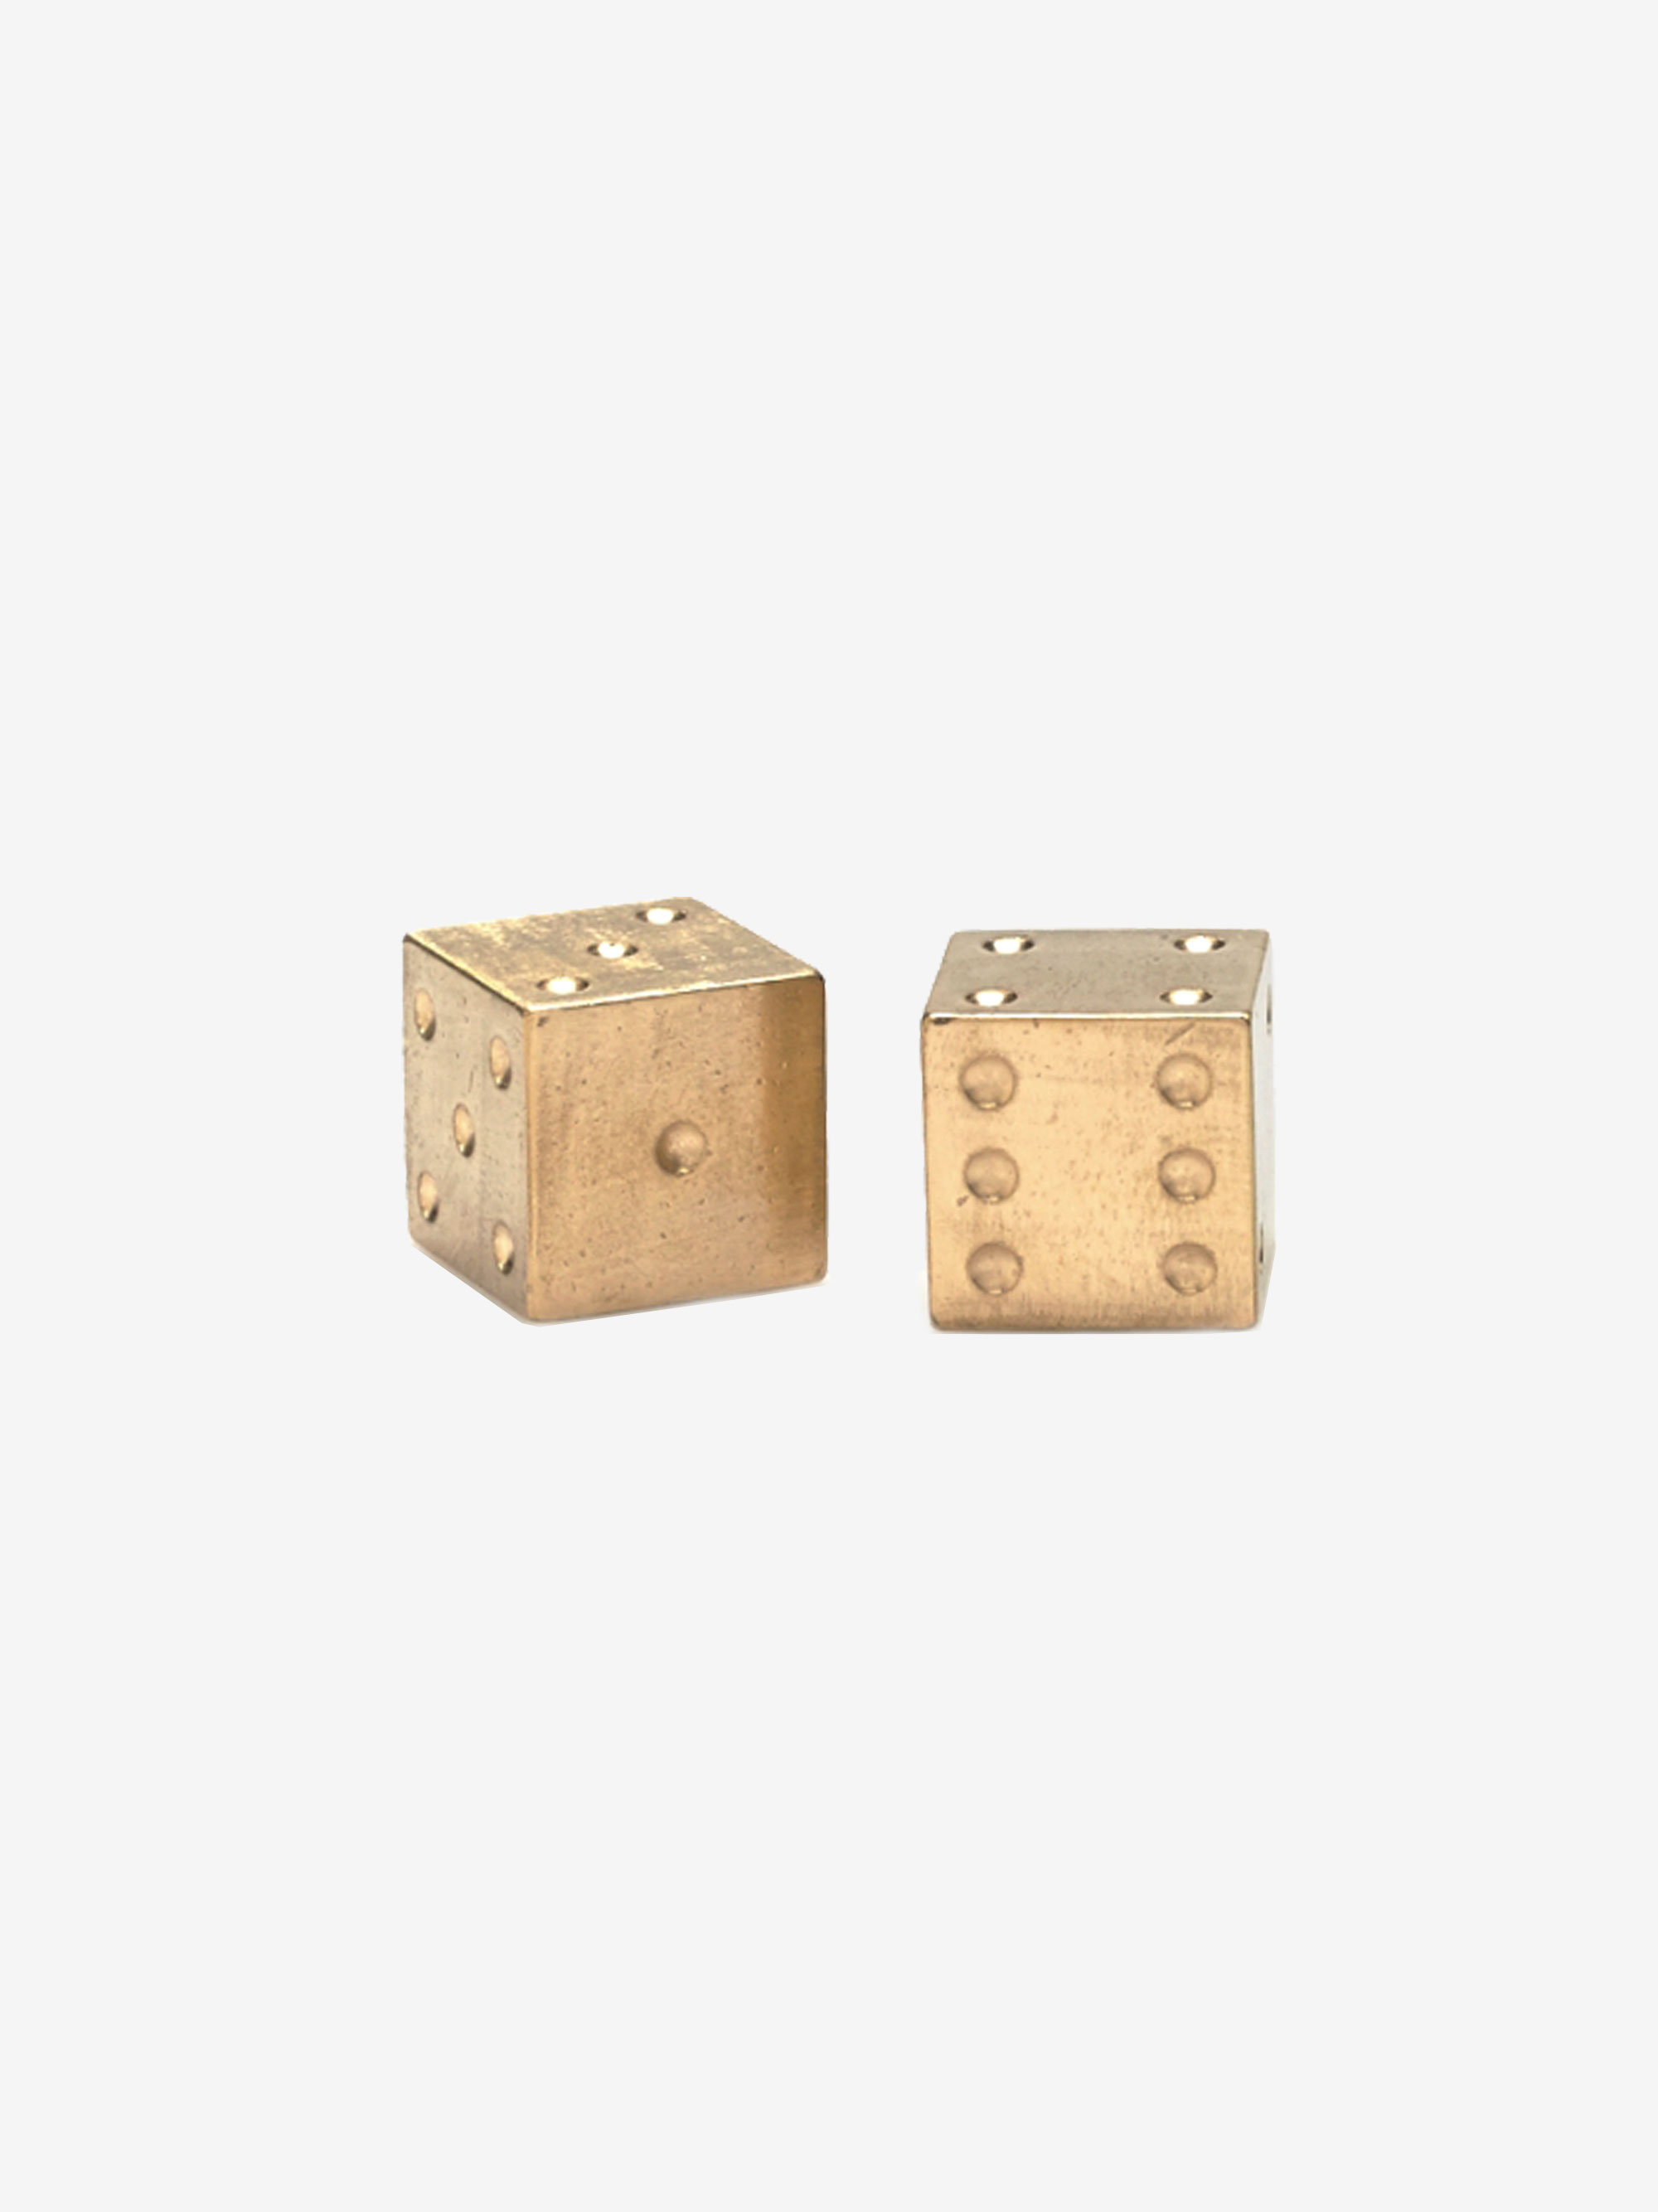 Dice Set and Holder